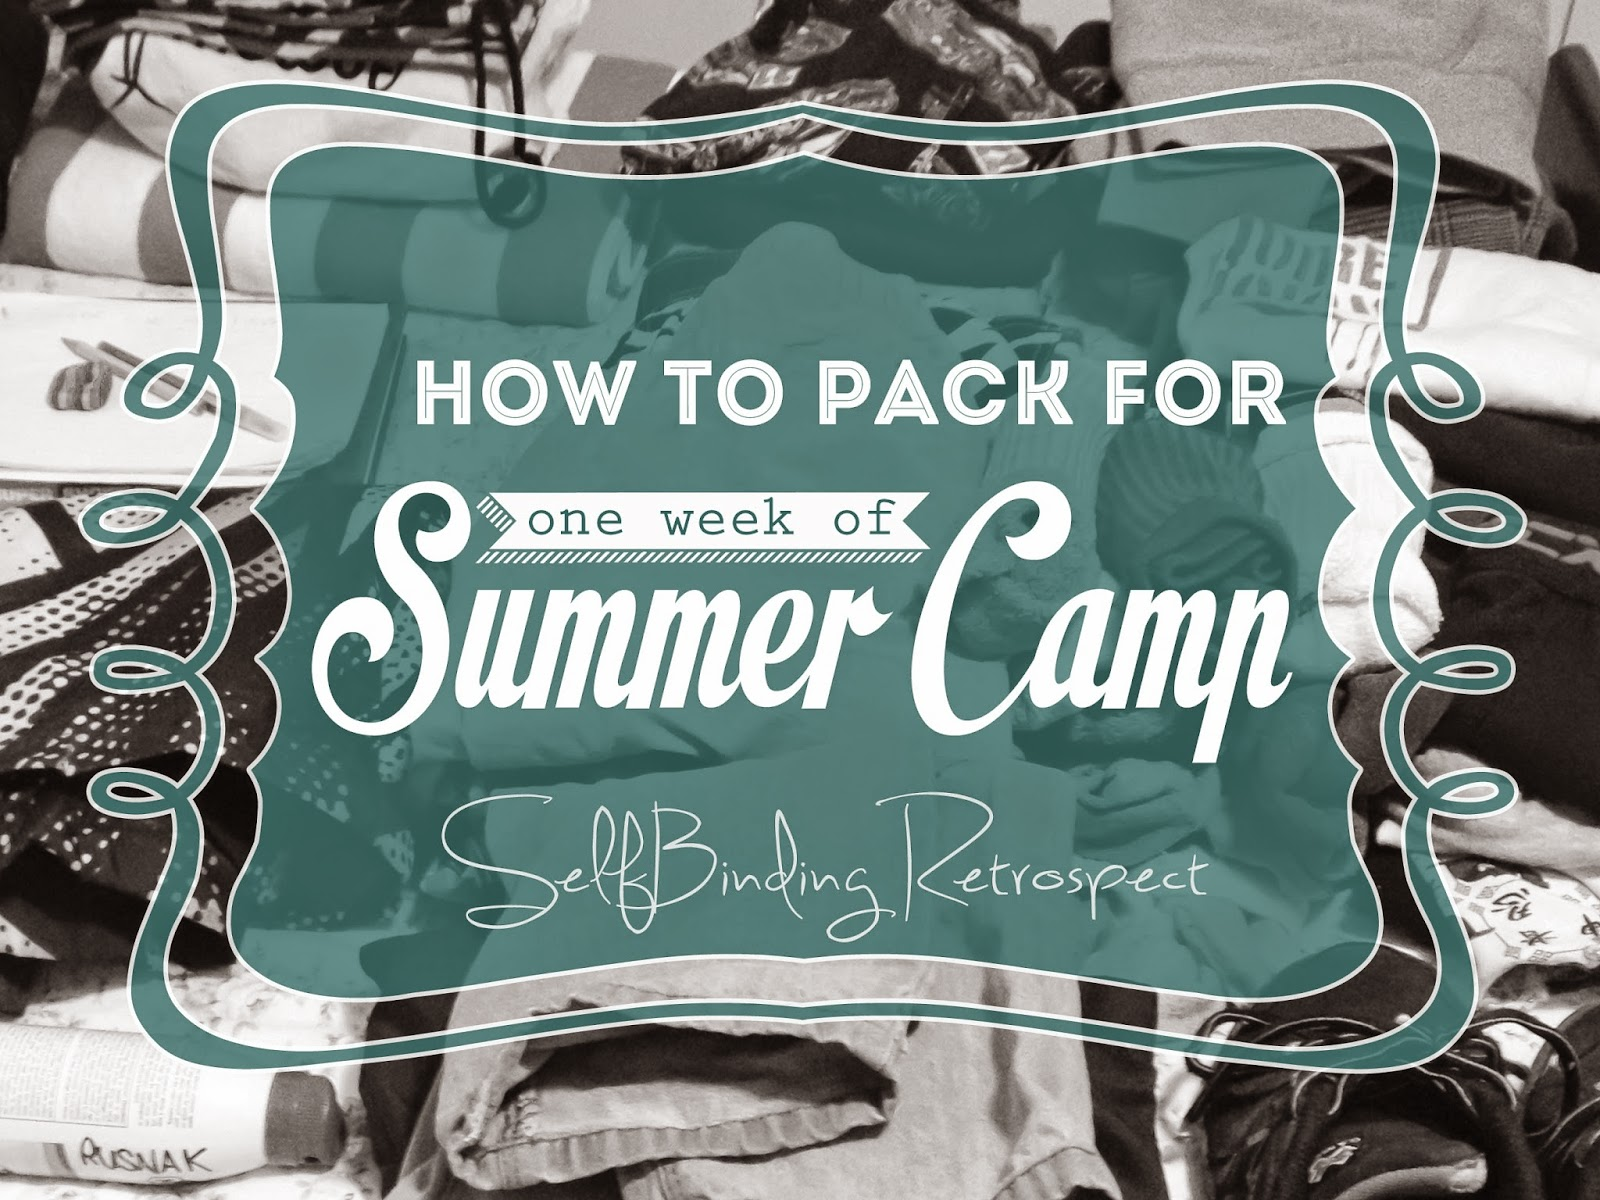 How To Pack For Summer Camp - SelfBinding Retrospect by Alanna Rusnak - includes a complete packing list!